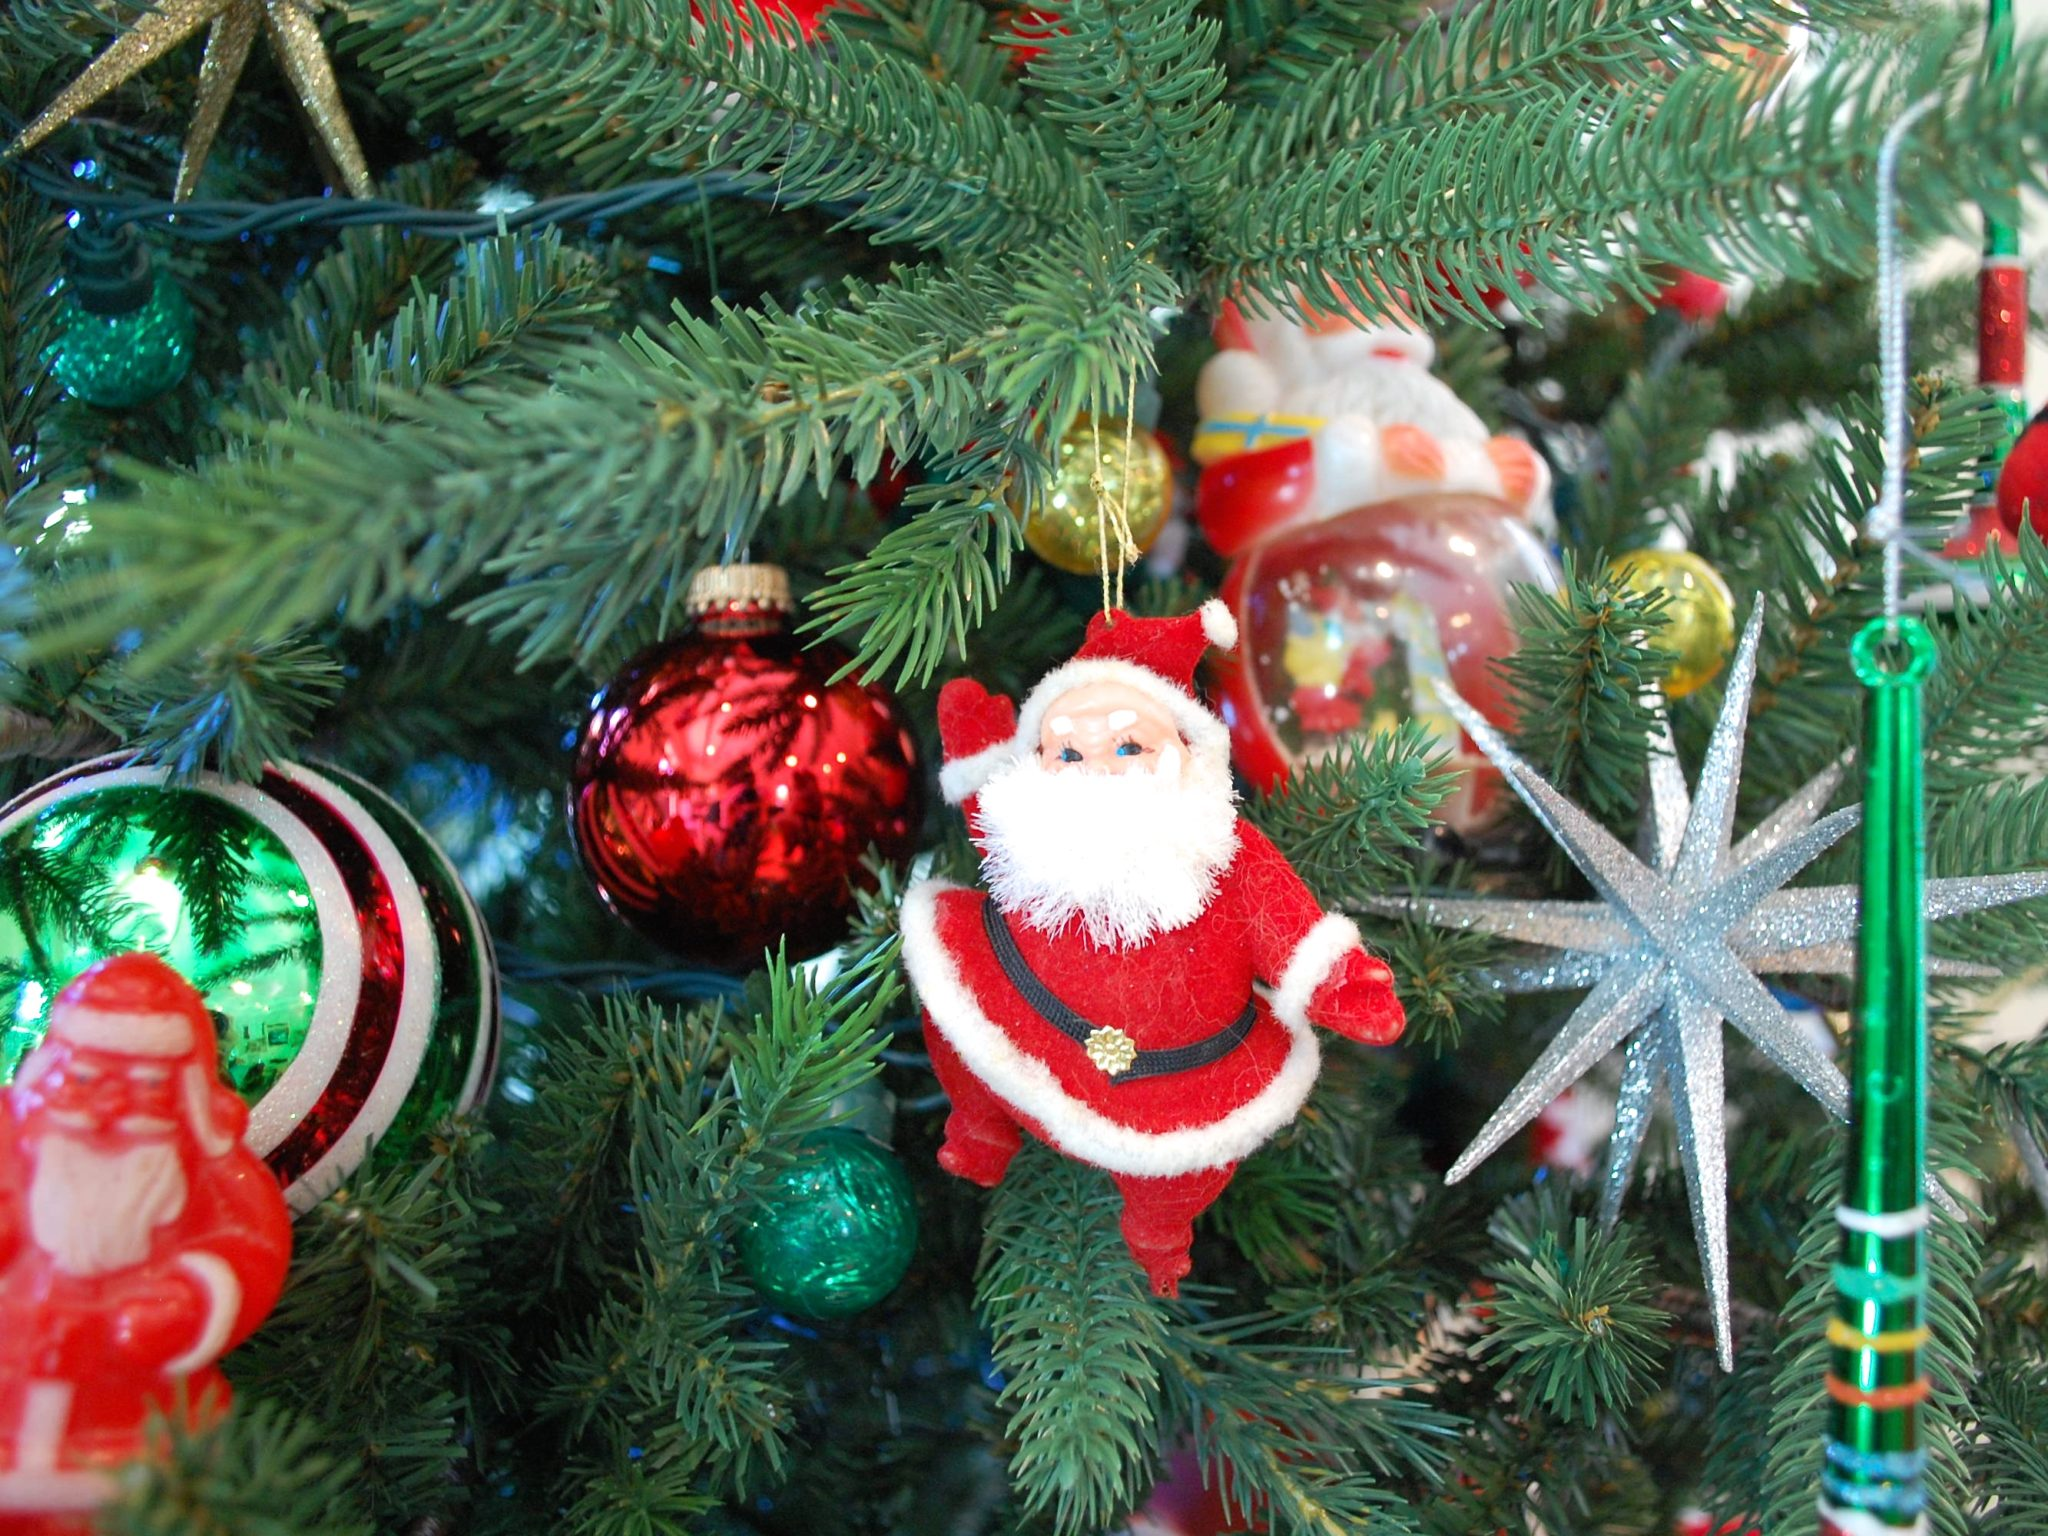 Snowglobes Plush Rubber Faced And More If Its Vintage Santa It Is On My Tree But Enough About Me Lets Talk Todays Treetopia Design Council